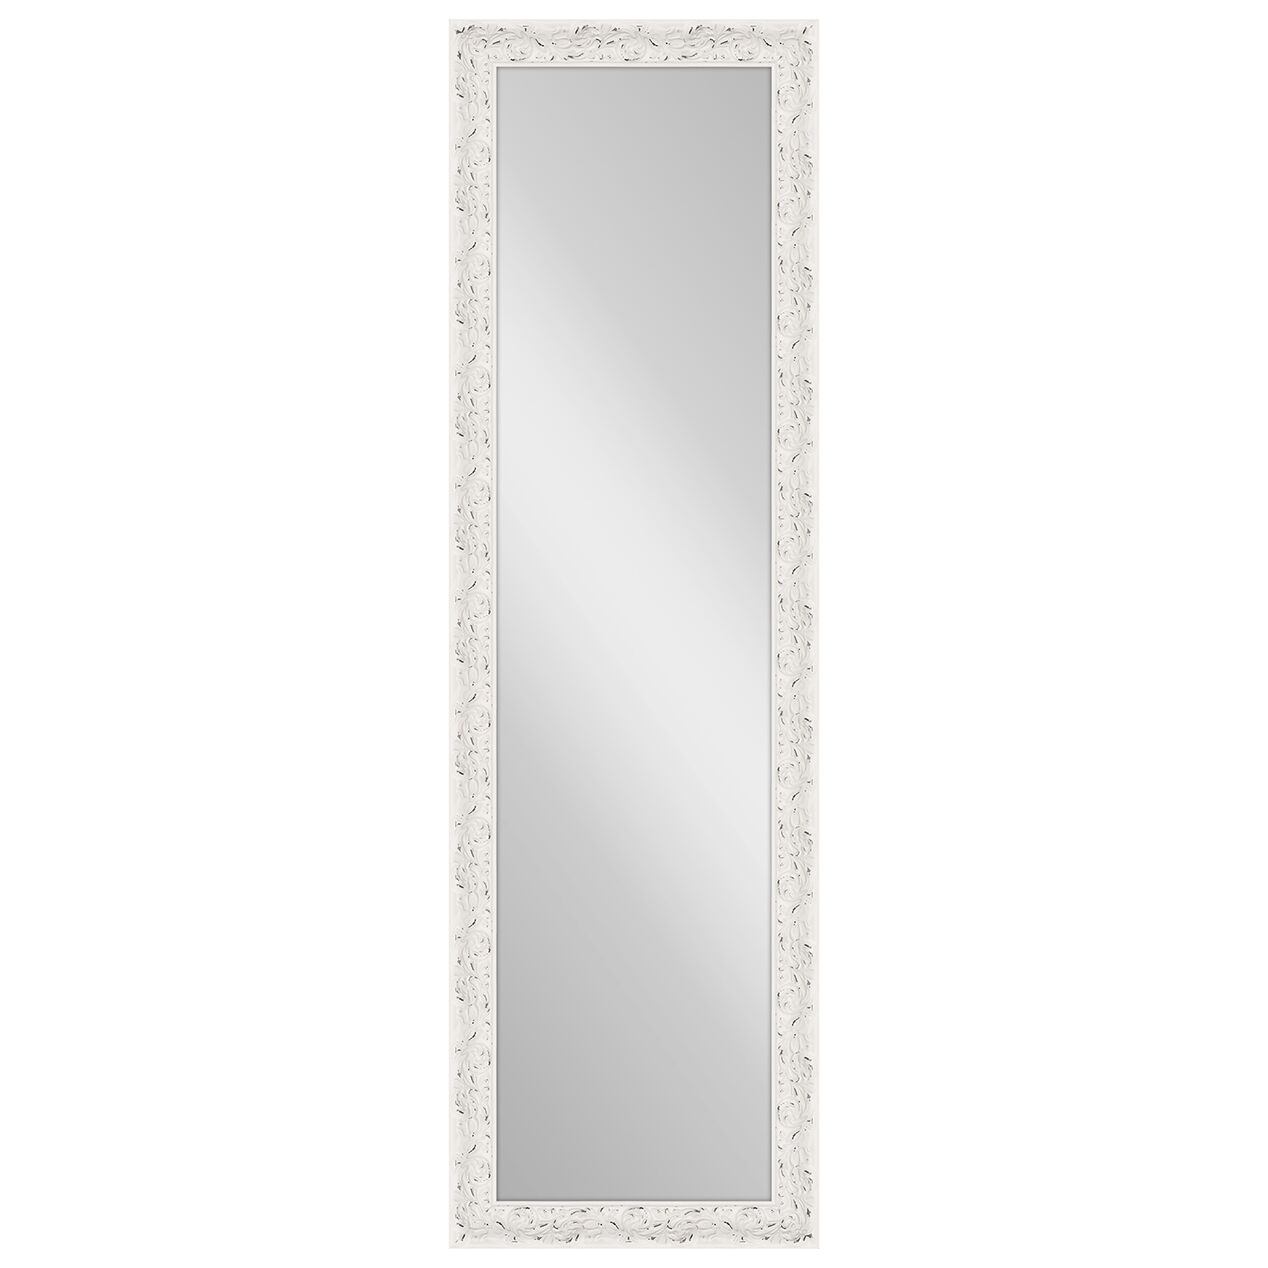 Ornate mirror 12x48 in at home for 12x48 door mirror